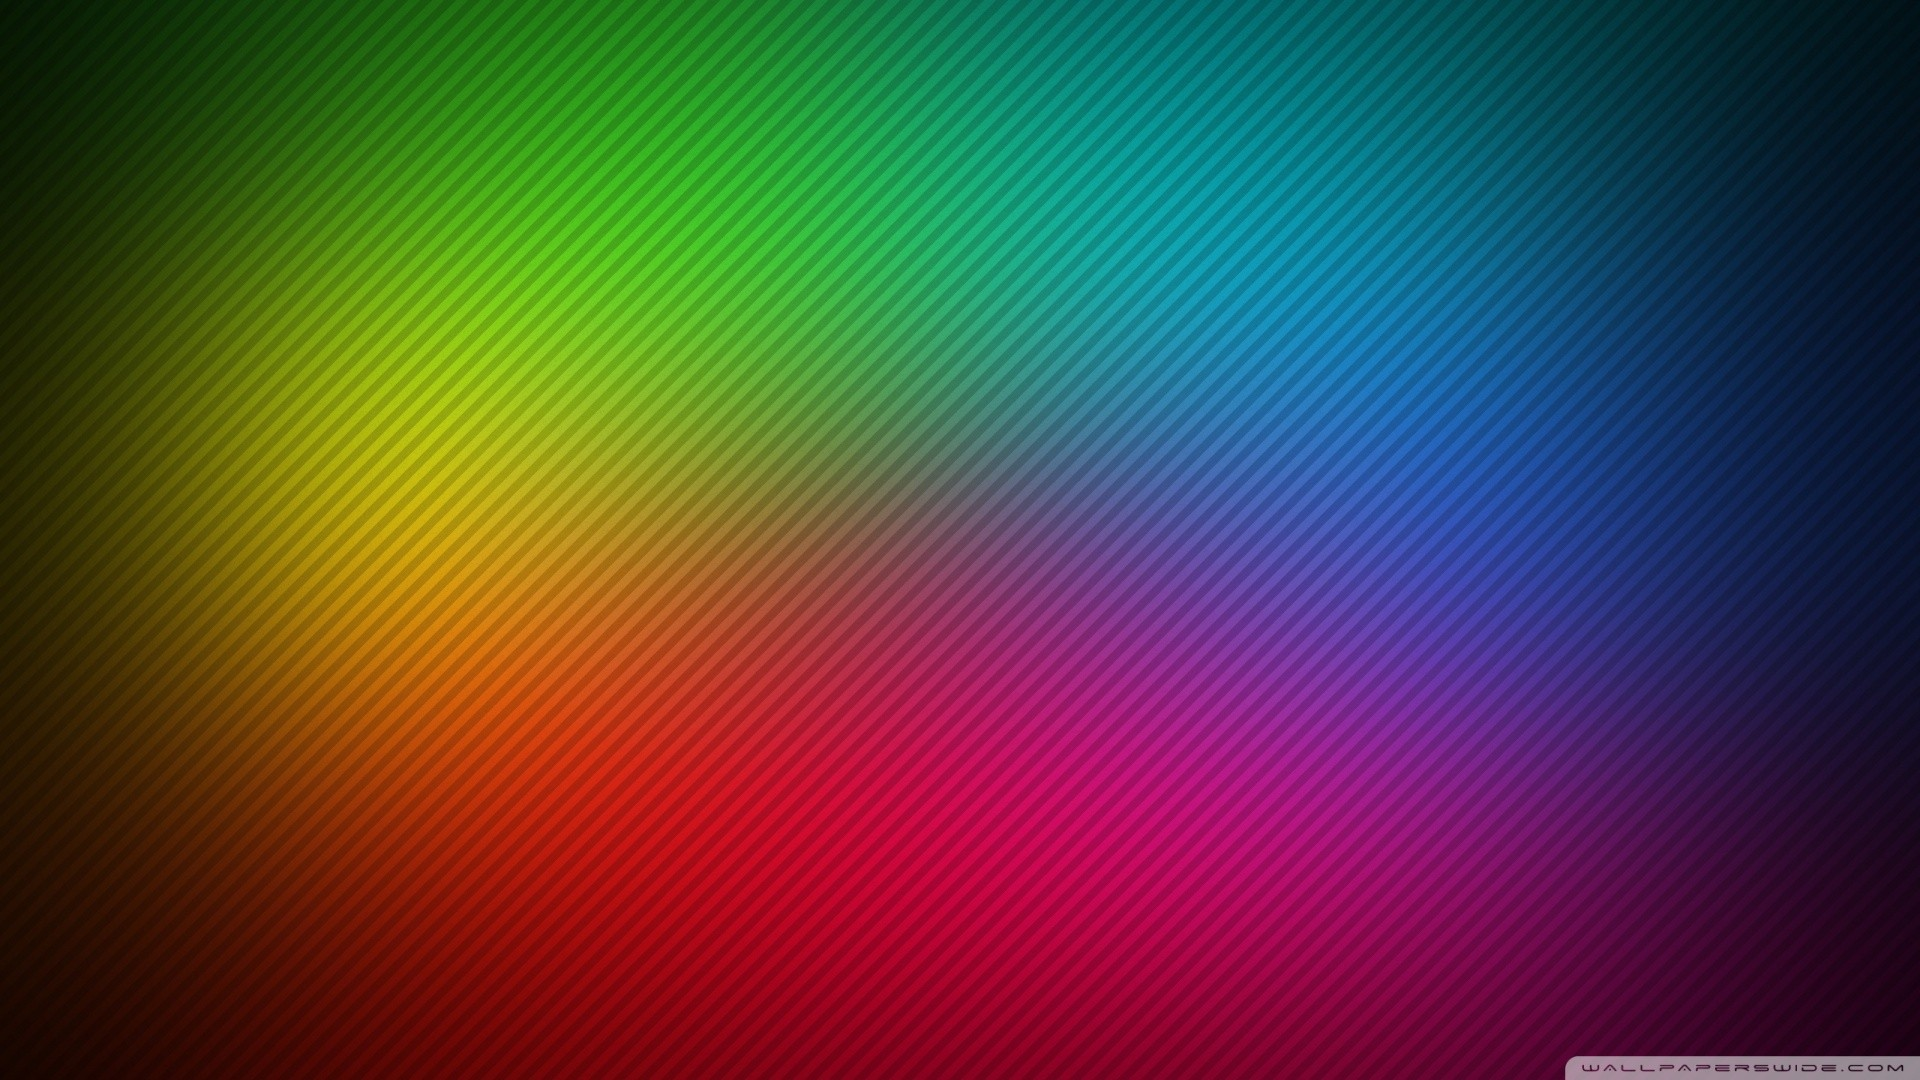 hd color wallpapers 66 images